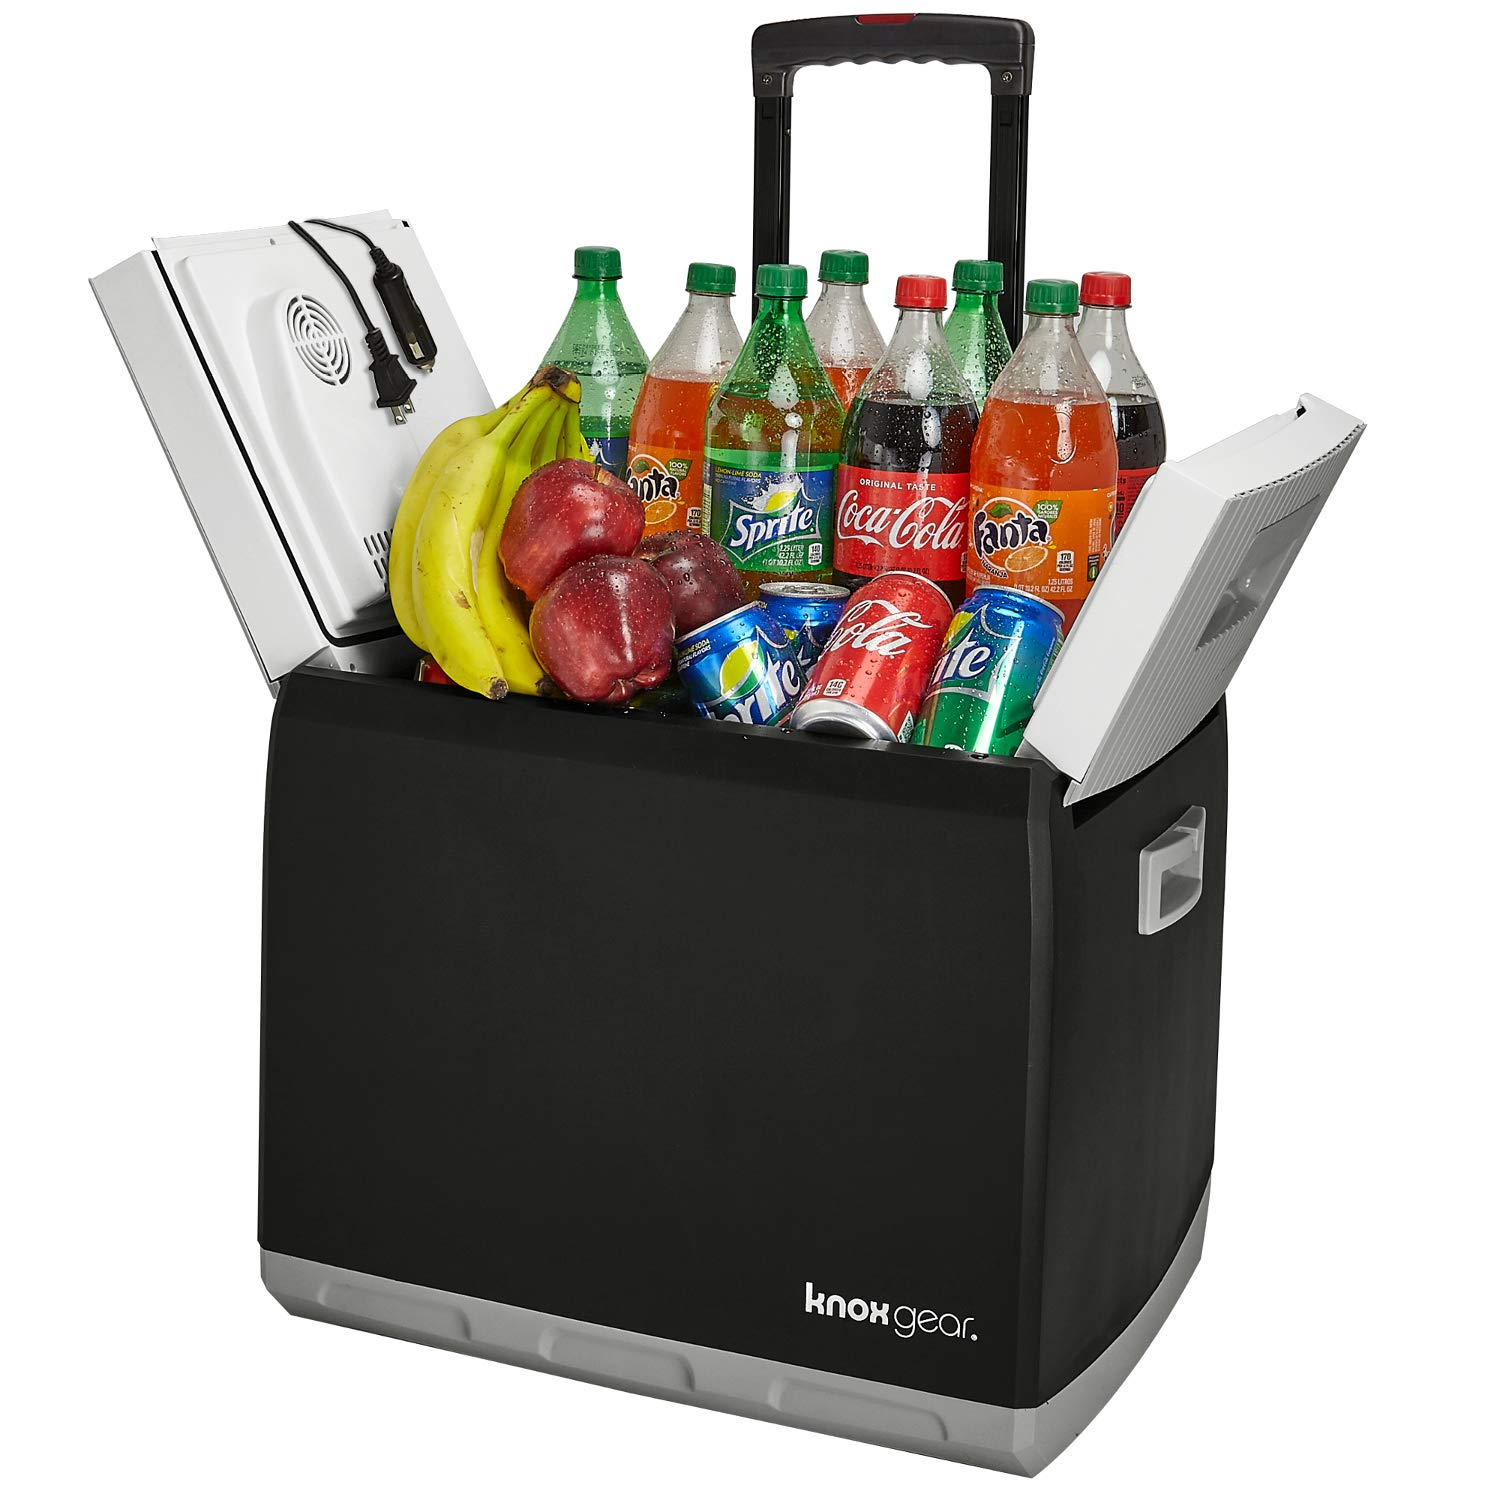 Knox Electric Travel Cooler and Warmer - 47 Quart (60 Cans) Portable Fridge with AC and DC Power Cords for Home, Car and Camping - Pull-Out Handle and Wheels by  Knox Gear